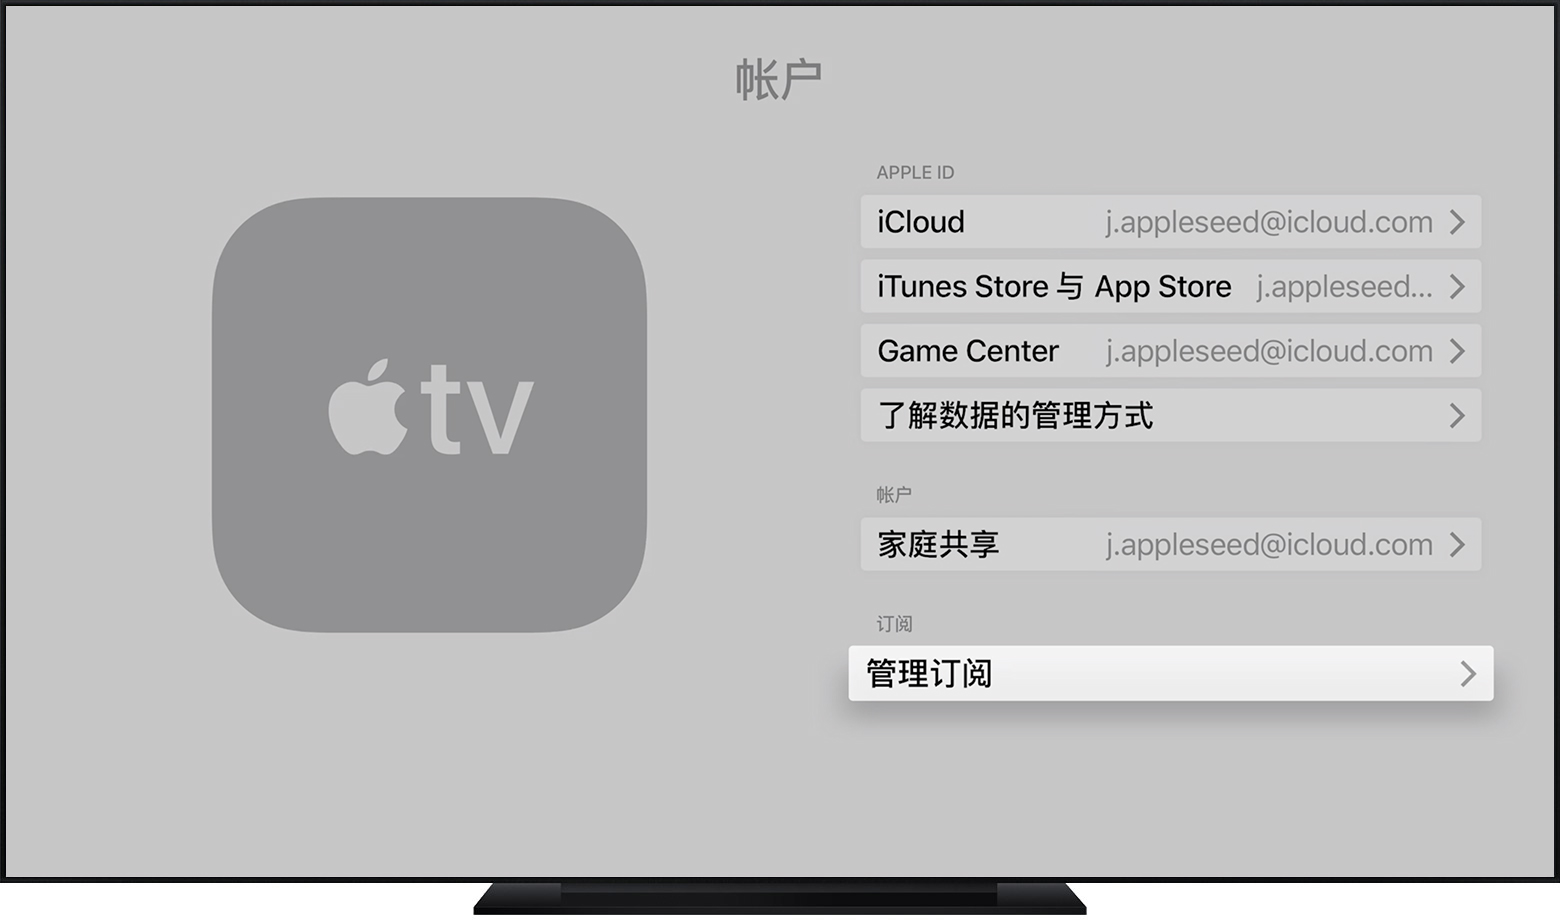 apple iphone support phone number 查看 更改或取消您的订阅 apple 支持 8102